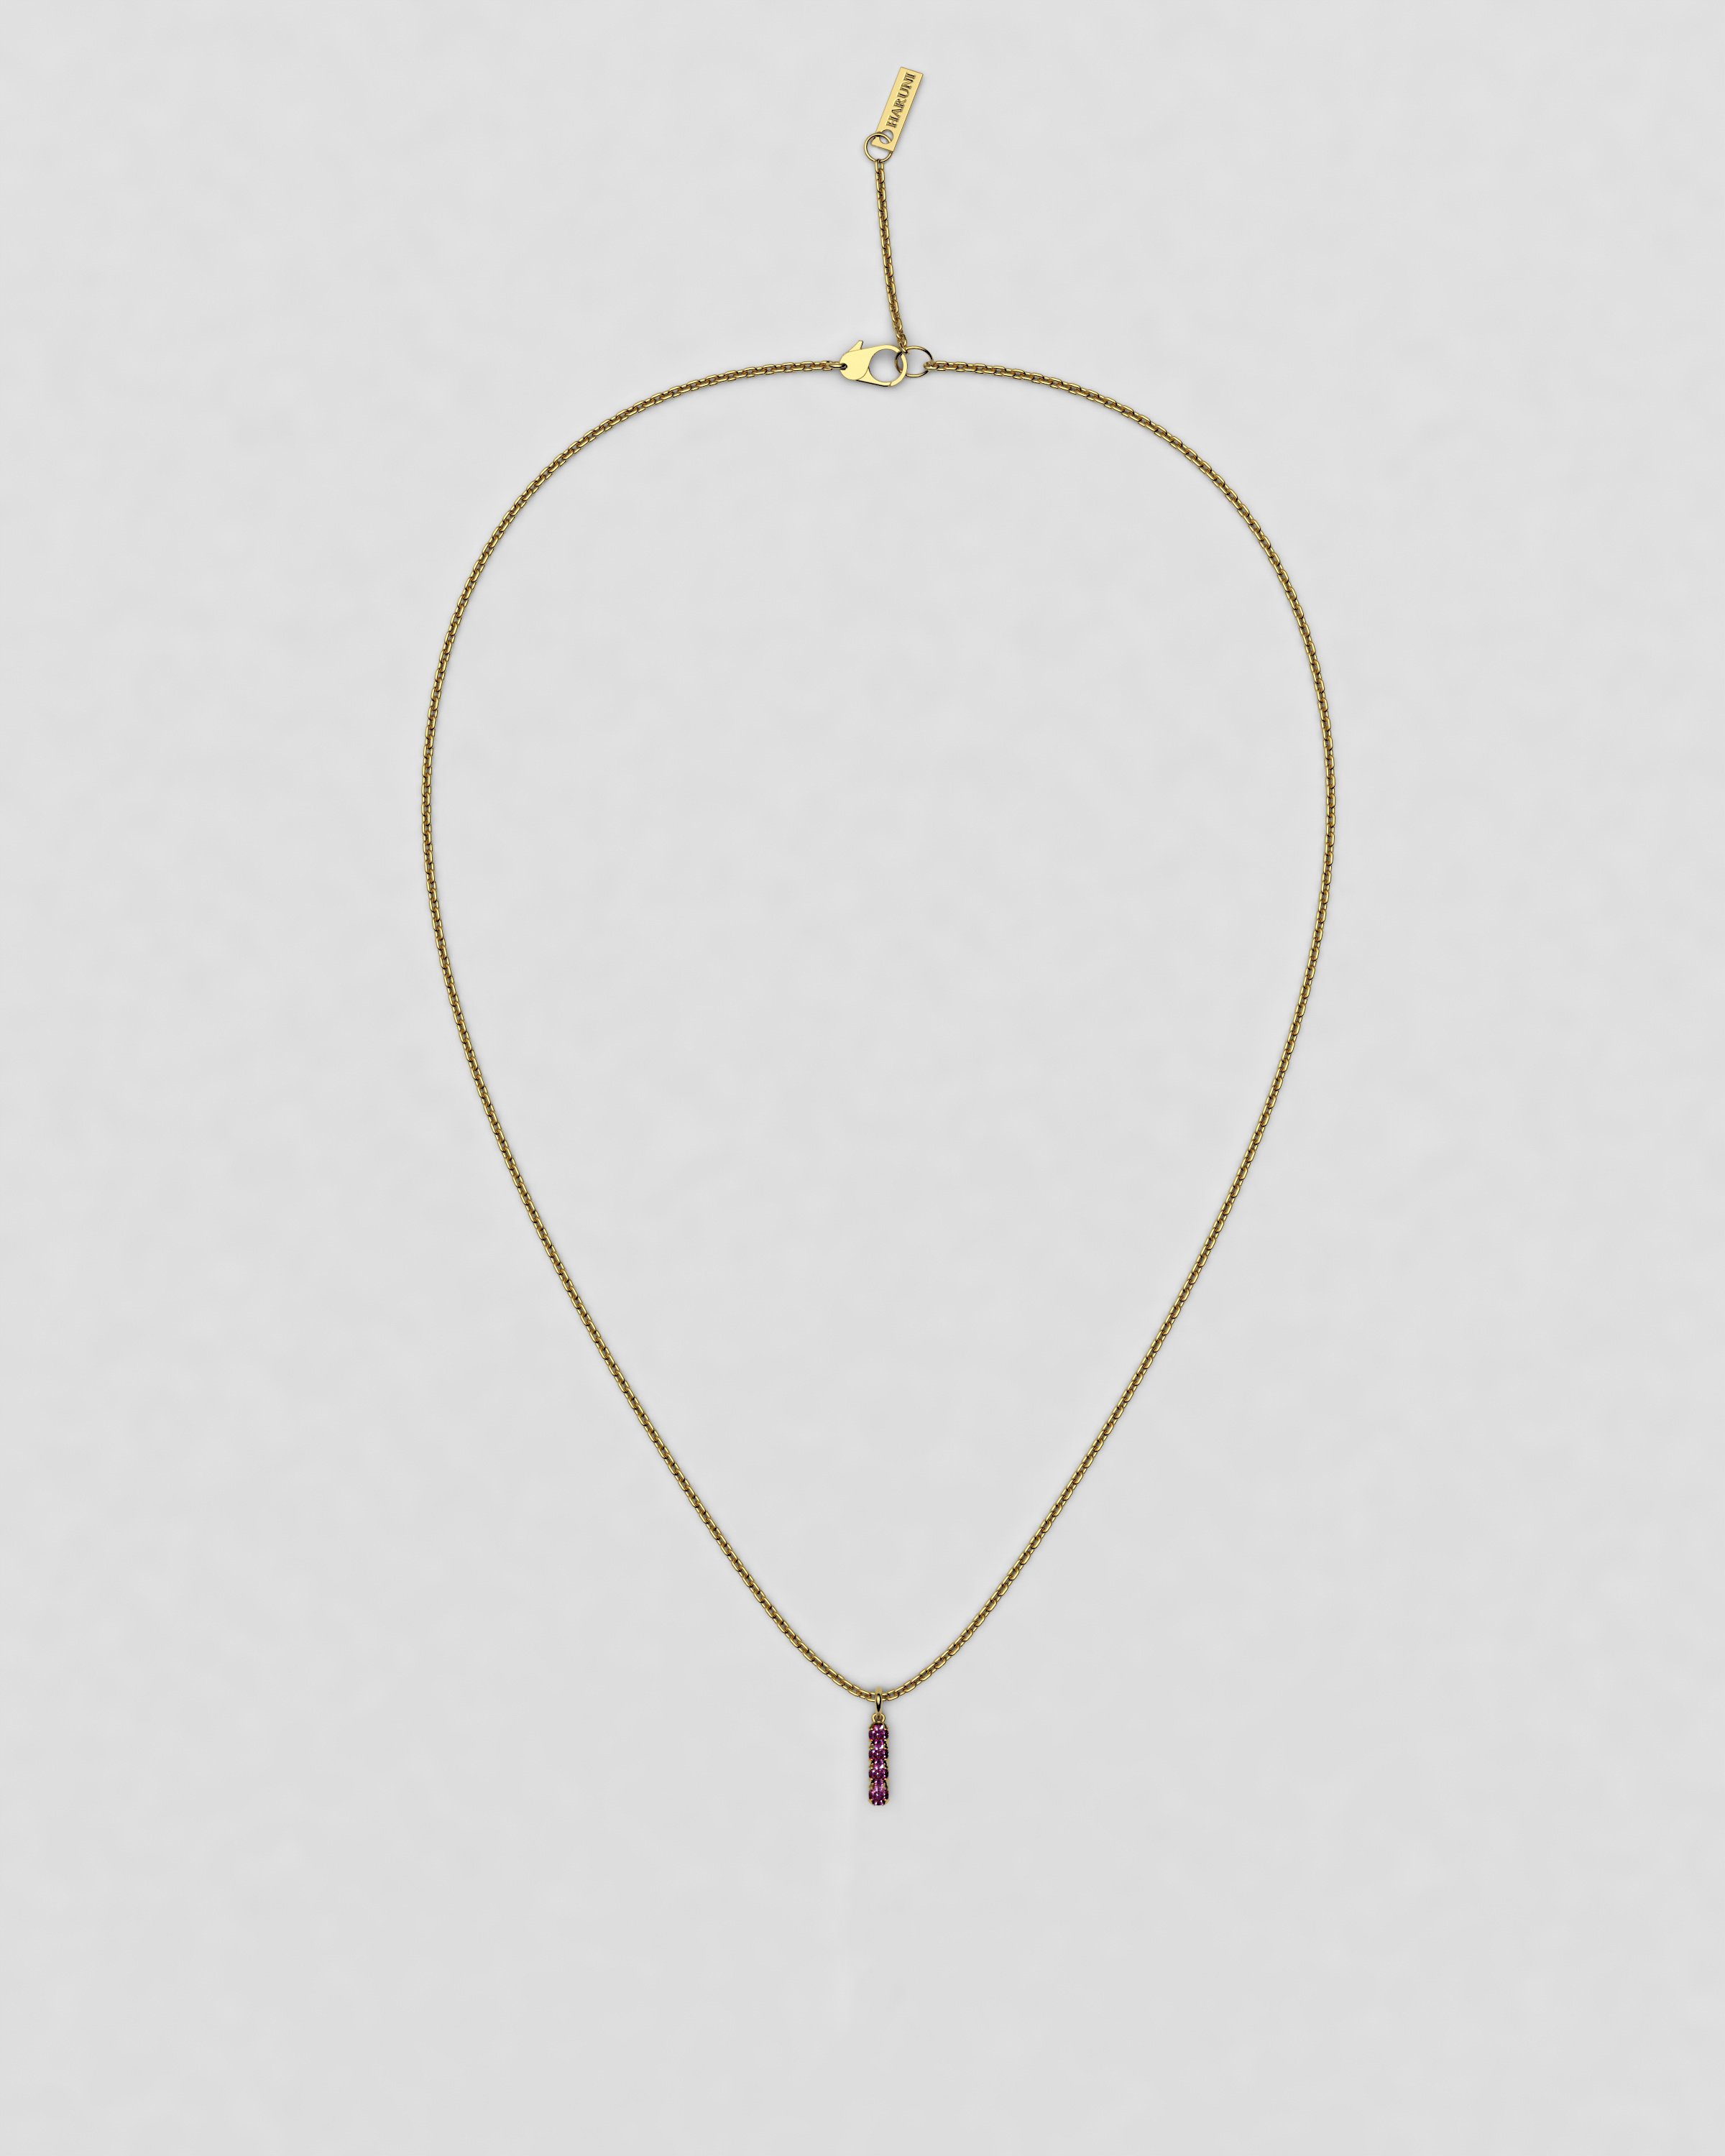 blossom necklace and short pendant  - fuchsia pink ruby and 18k yellow gold